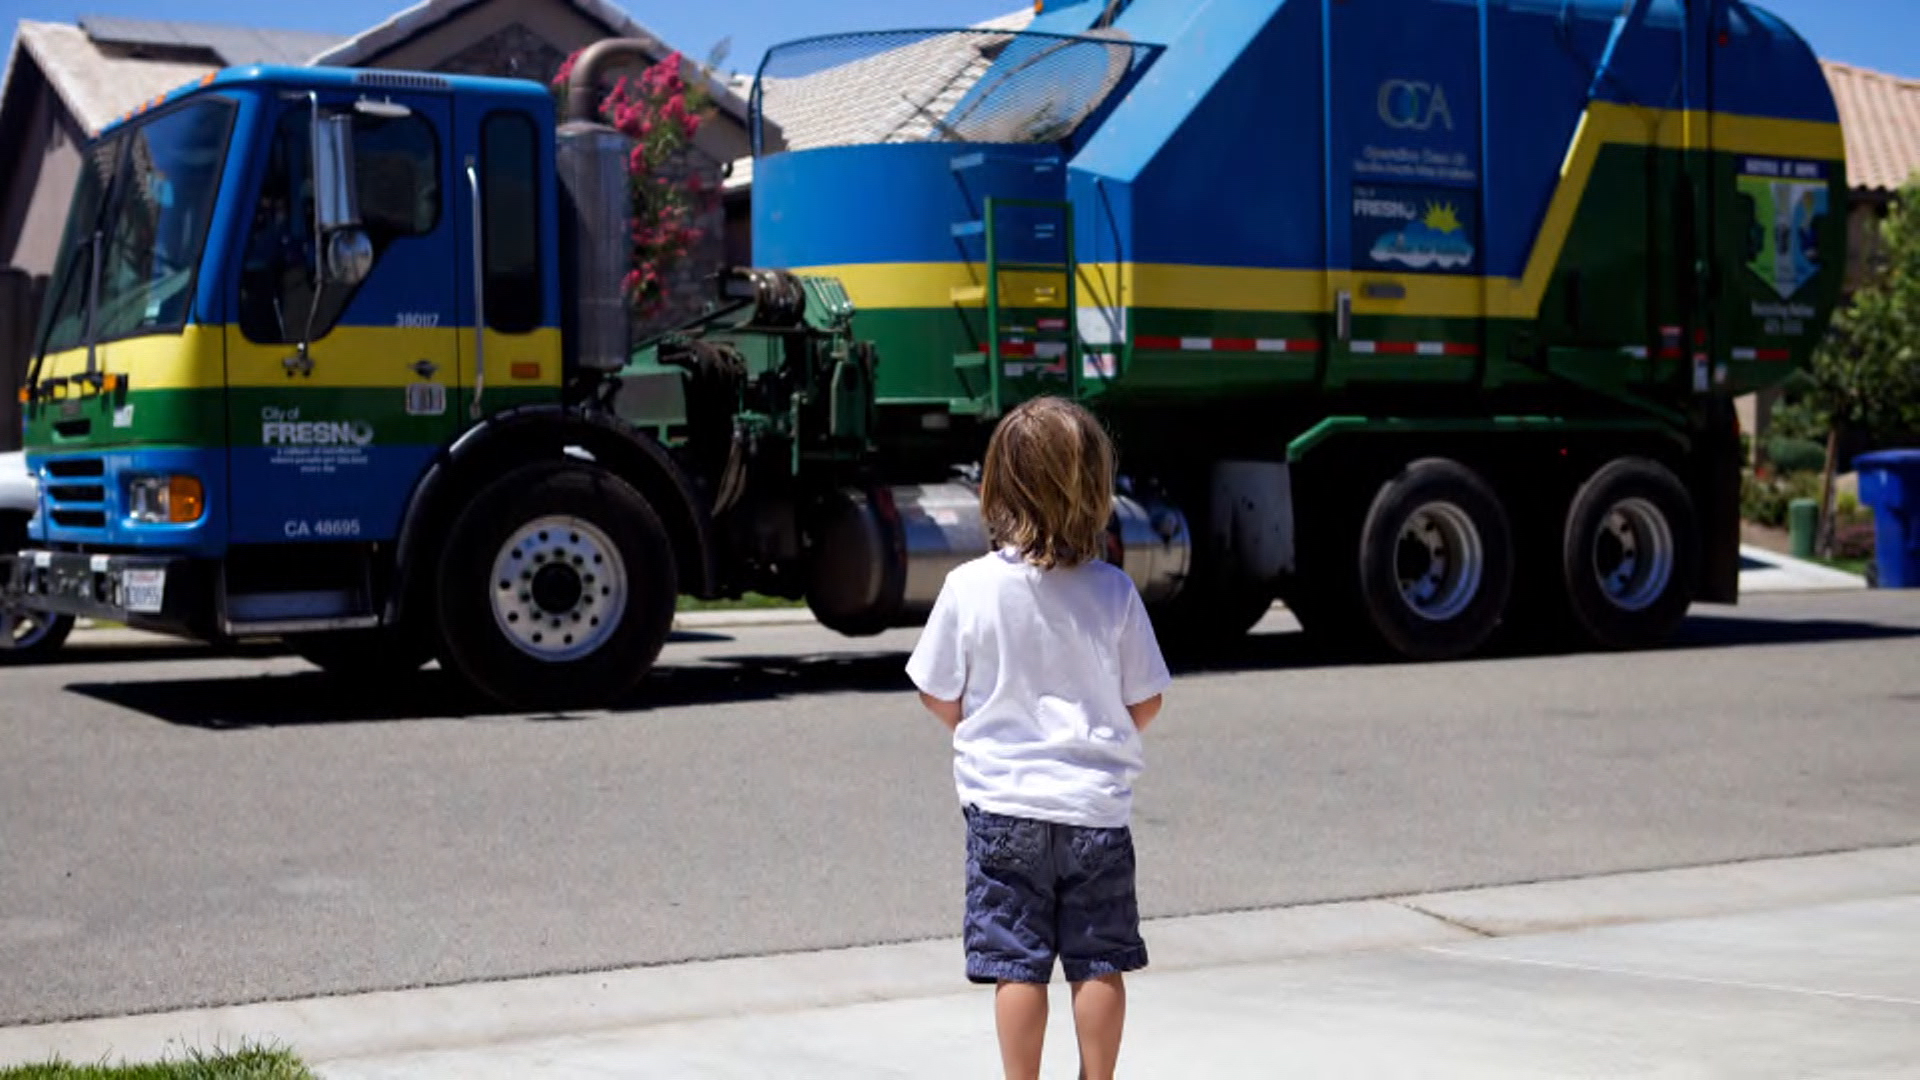 Greyson Speaks Delighted By A Garbage Truck